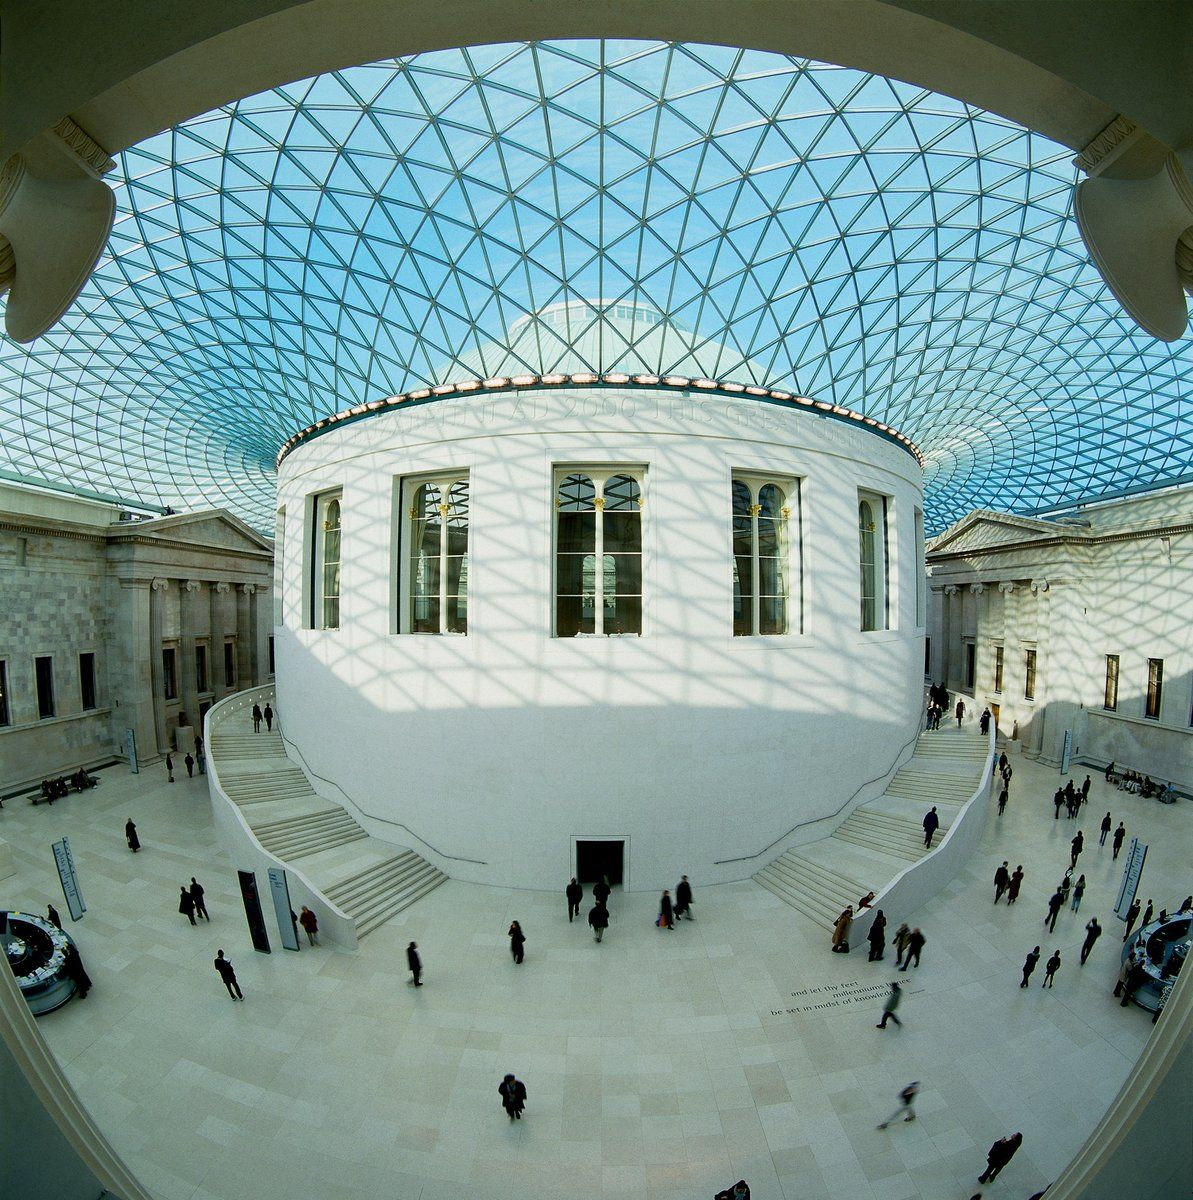 Britishmuseum Did You Know There Are 3 312 Panes Of Glass In The Ceiling Of The Great Court No Two Are Exactly The Same British Museum Museum Architecture